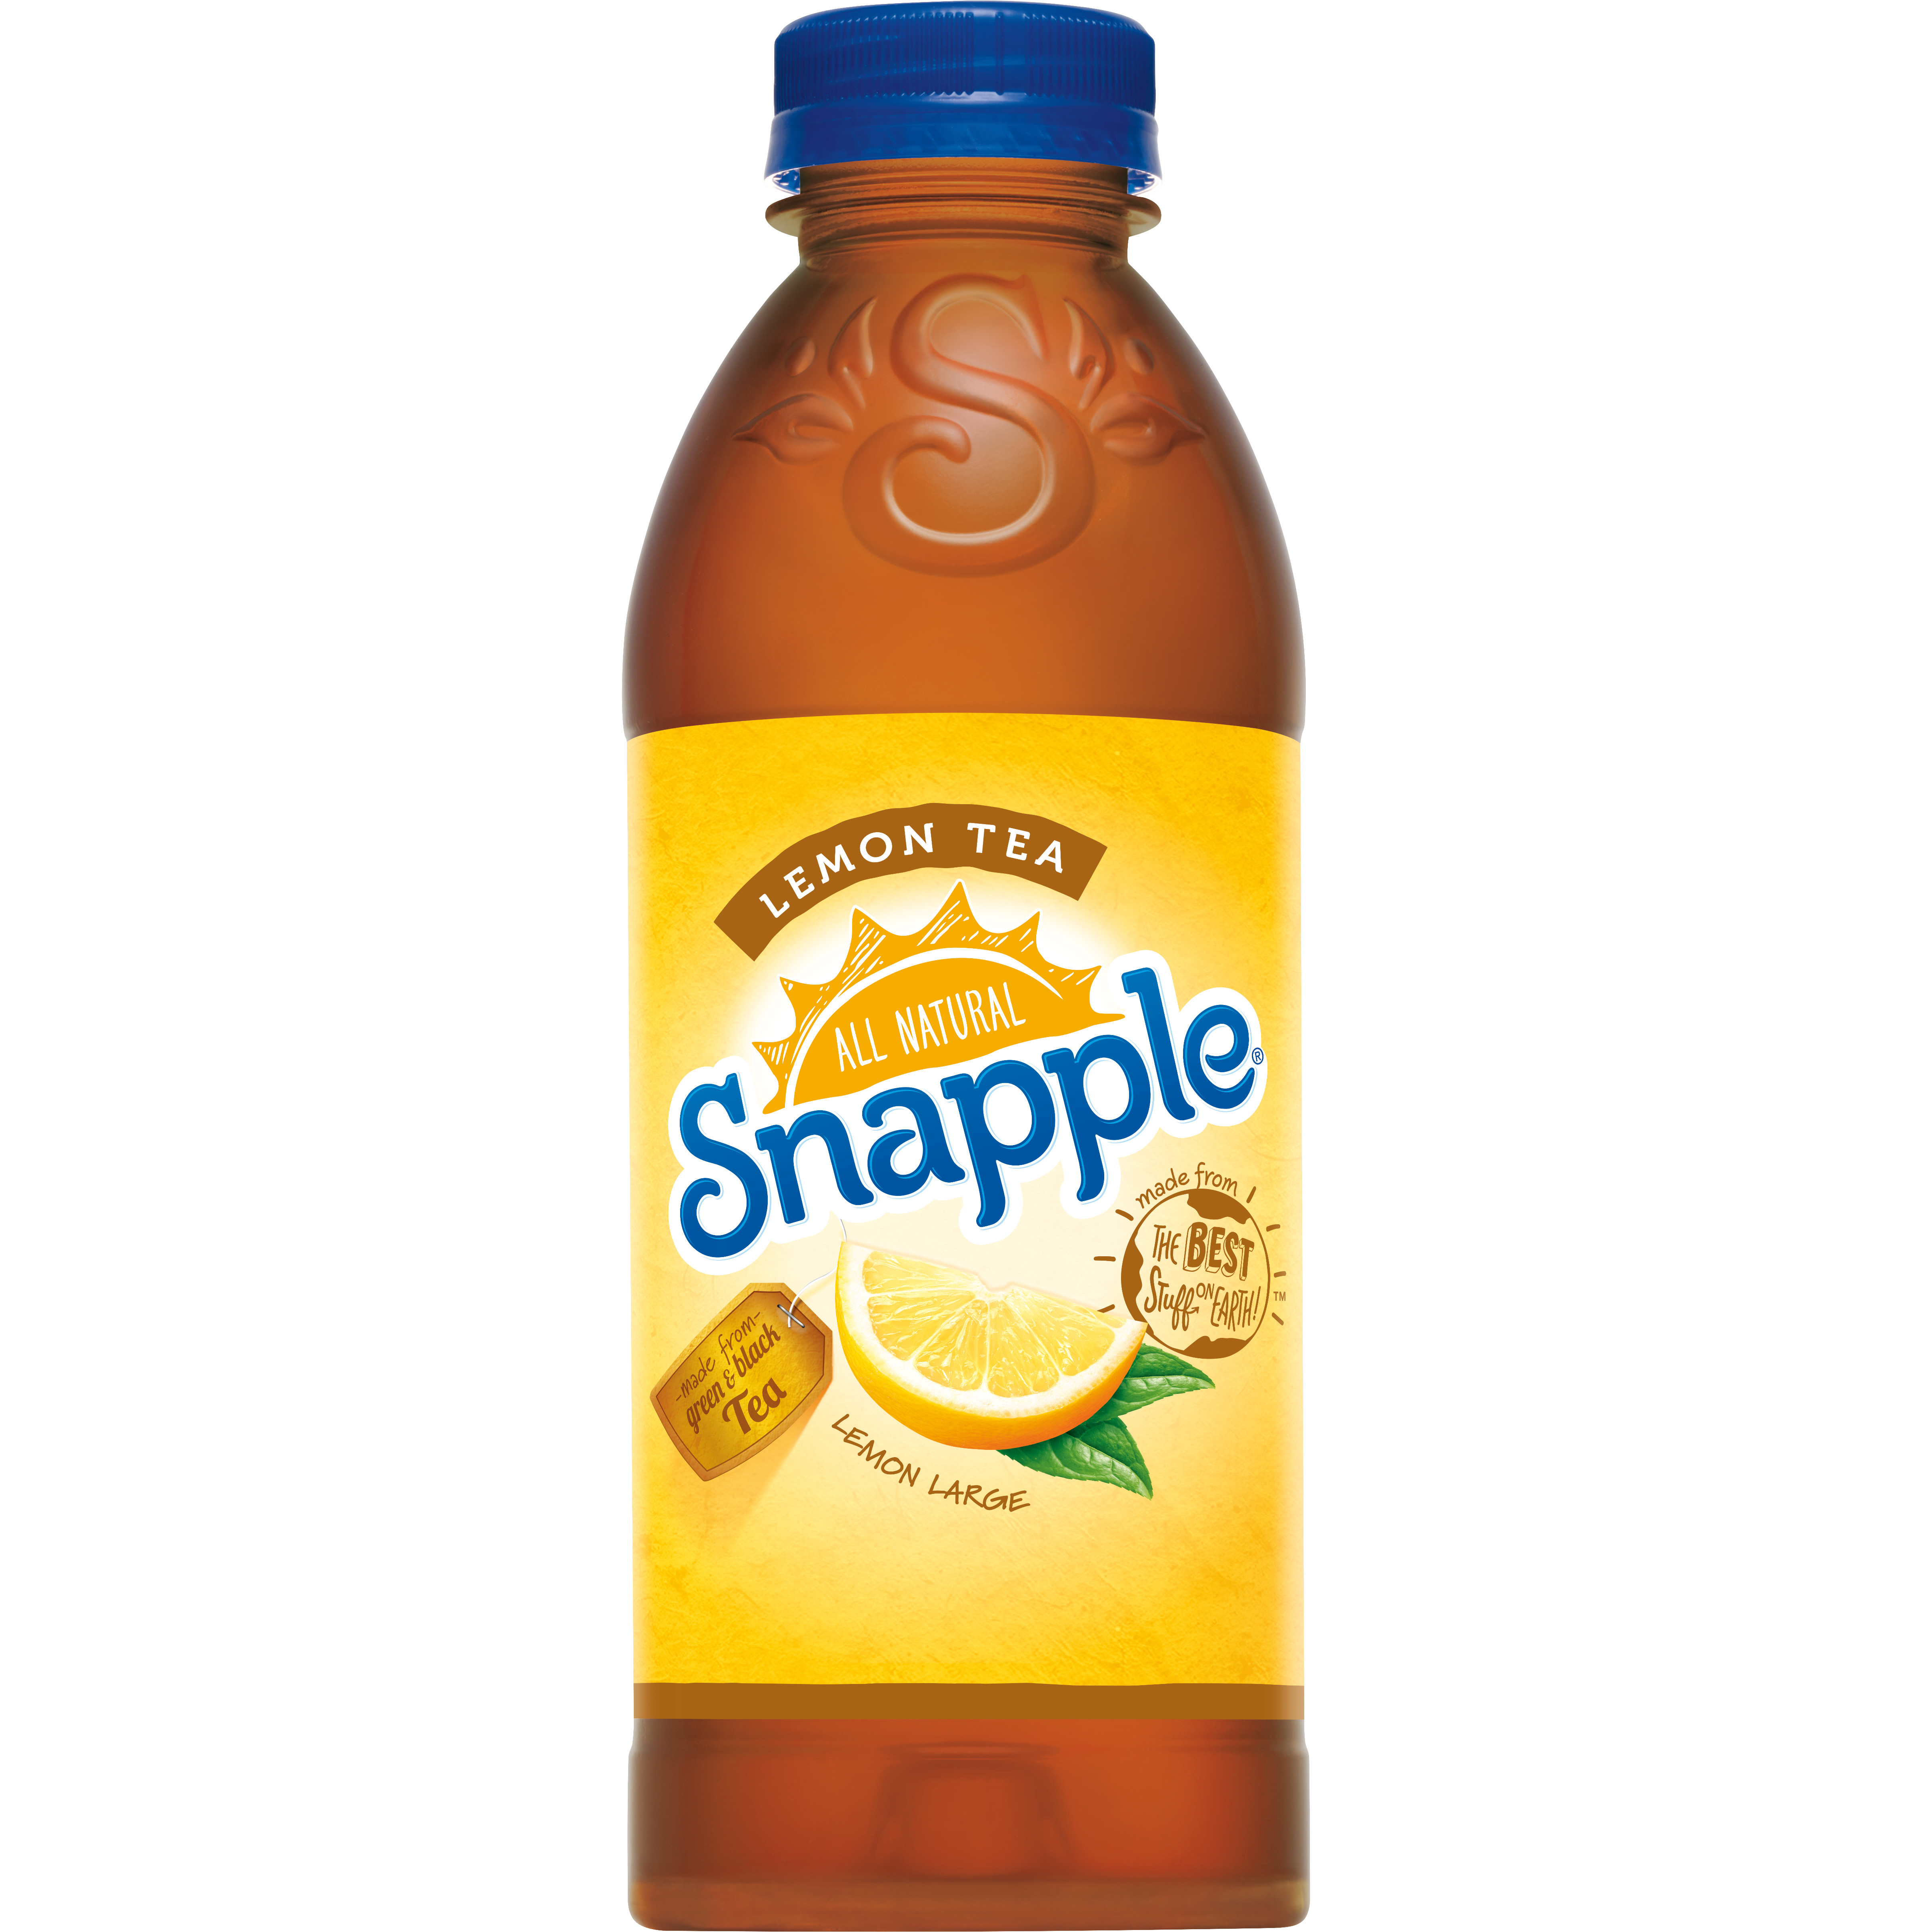 Snapple Lemon Tea, 20 fl oz